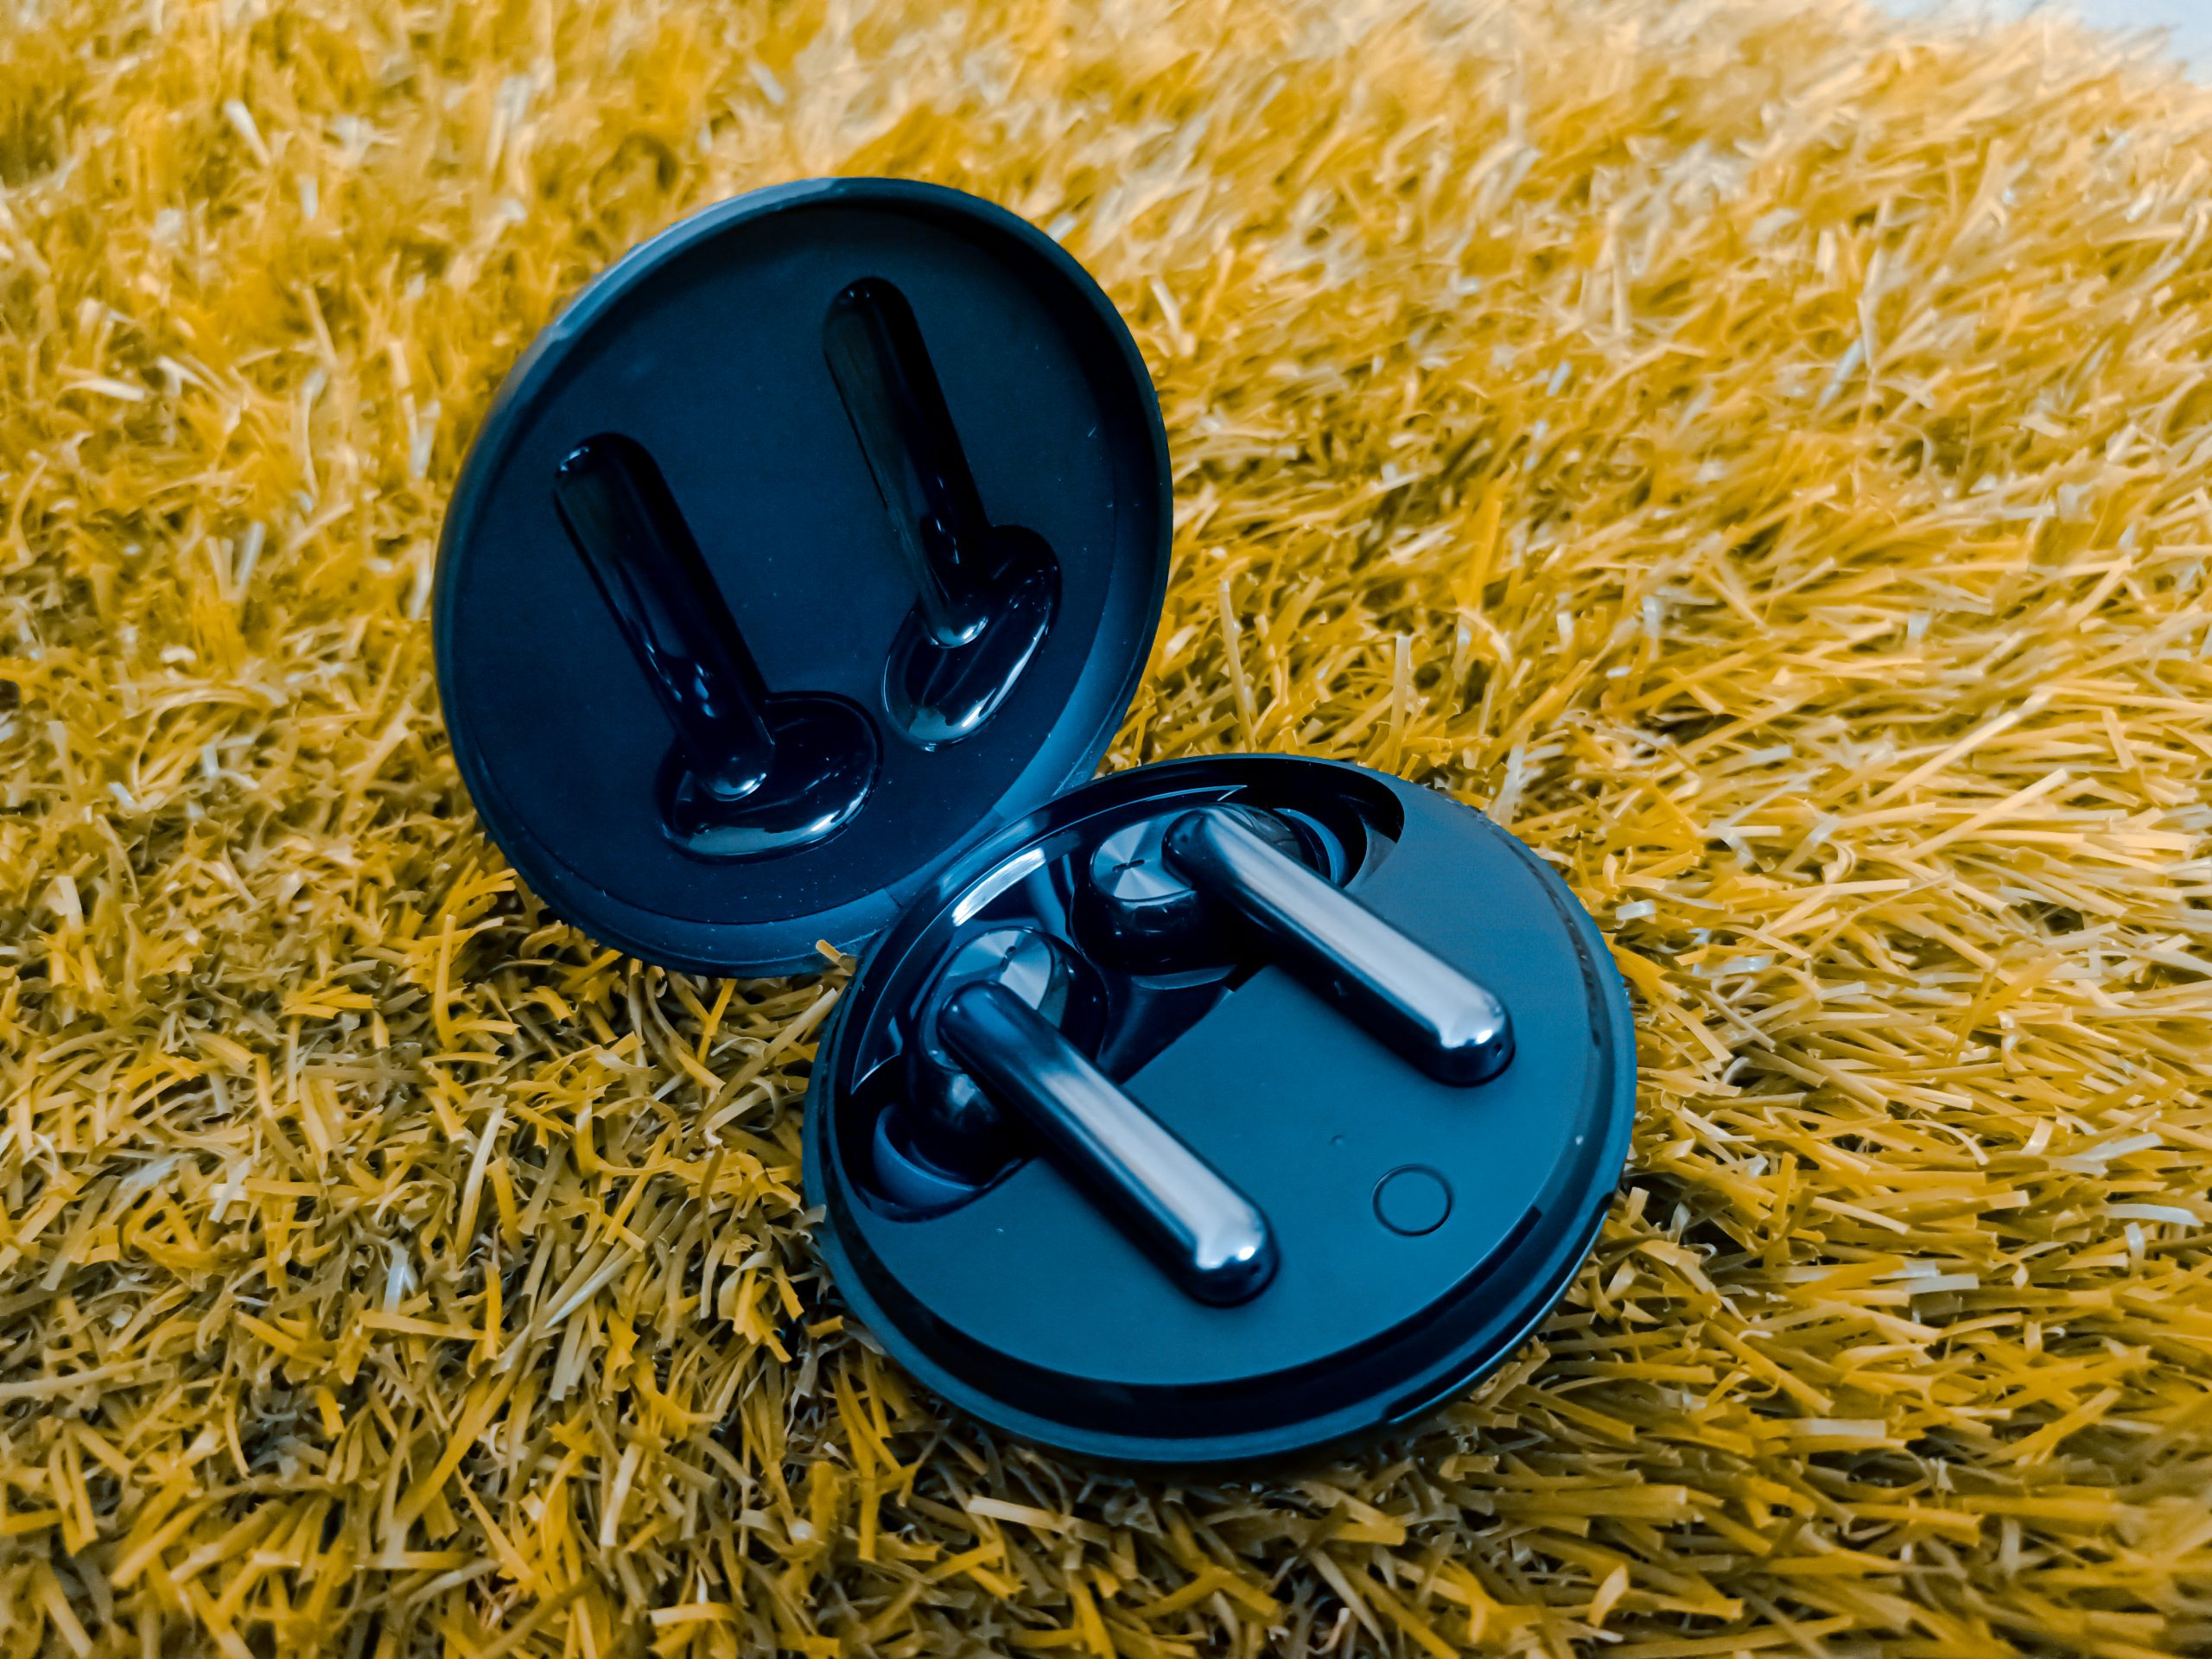 Earbuds on the grass